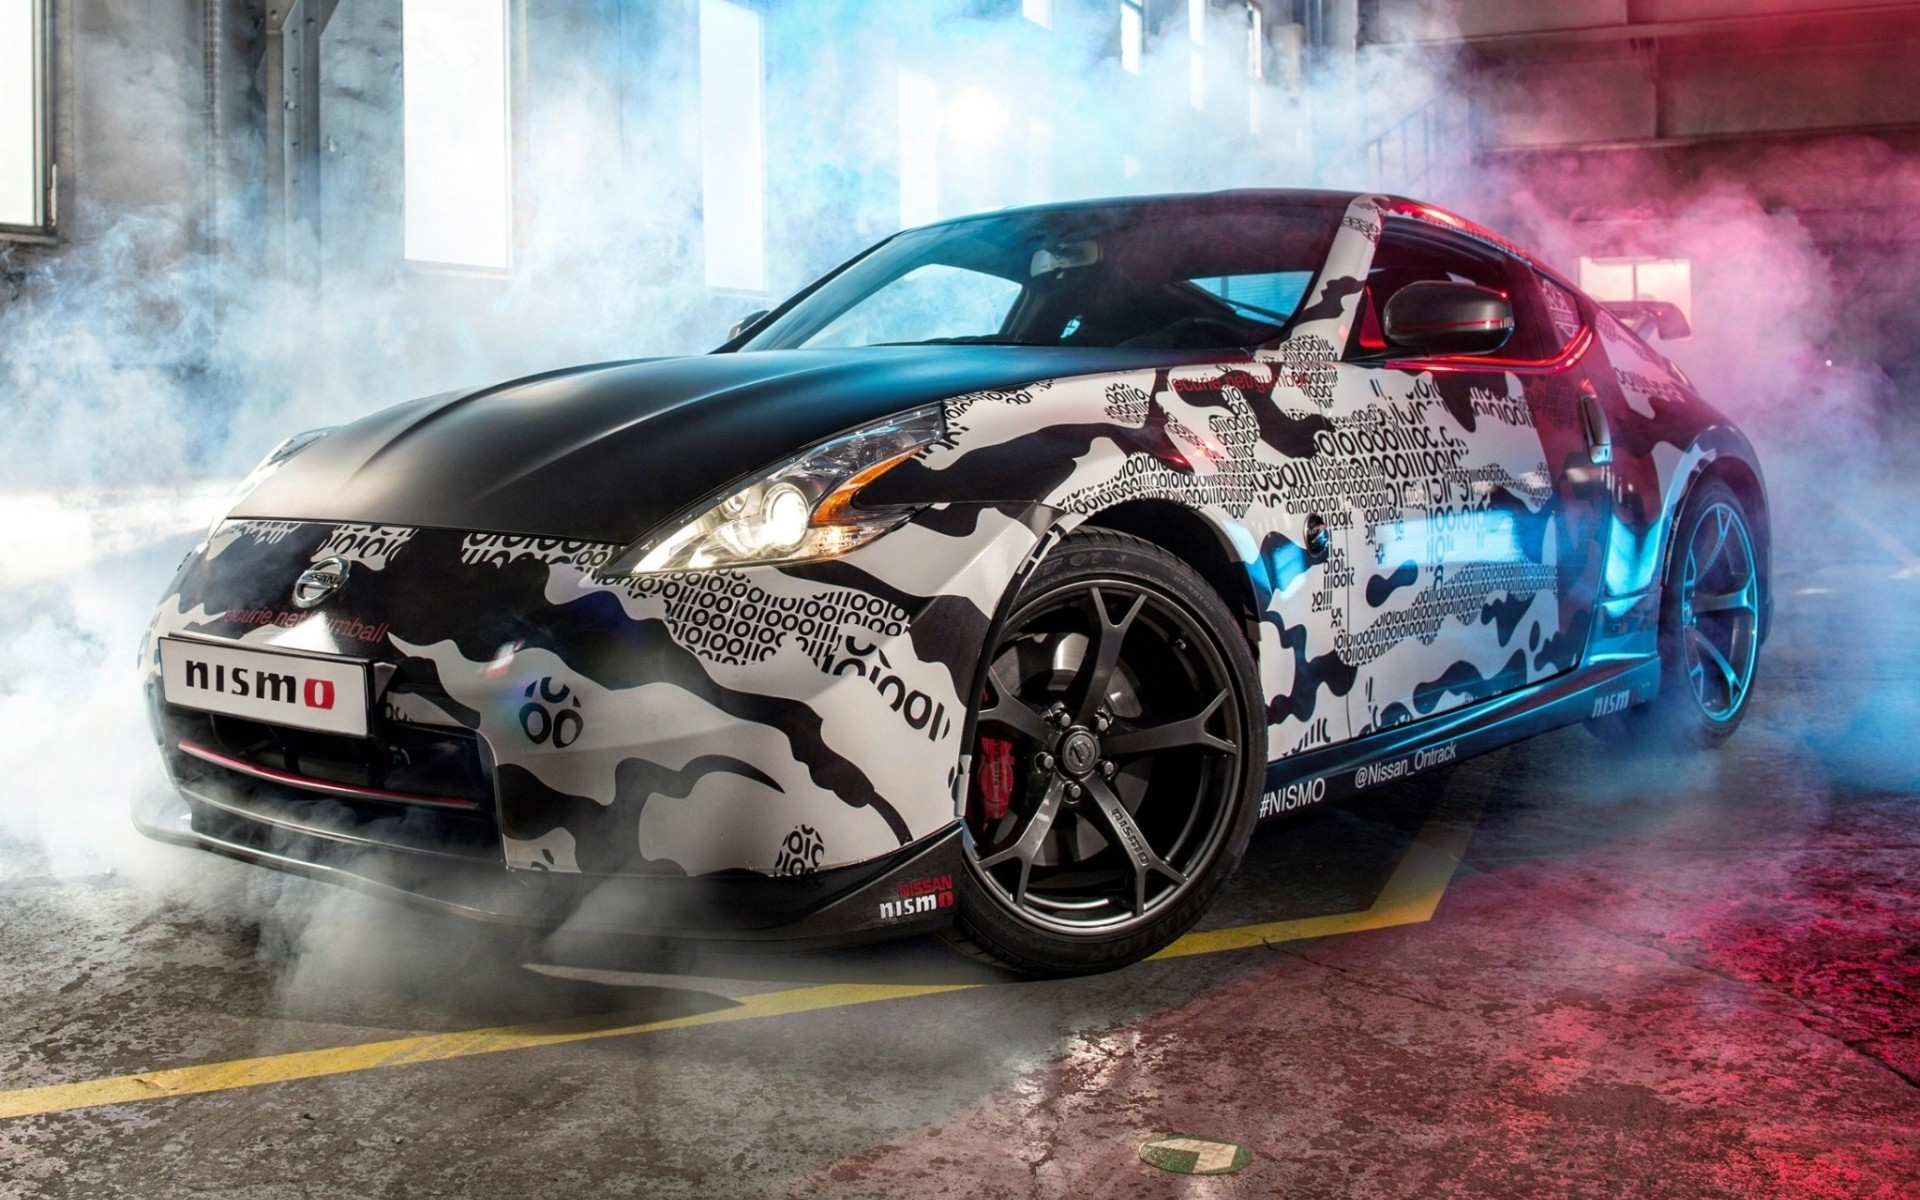 nissan car vehicle race drive fast automotive transportation system hurry competition wheel show international power nissan 370z